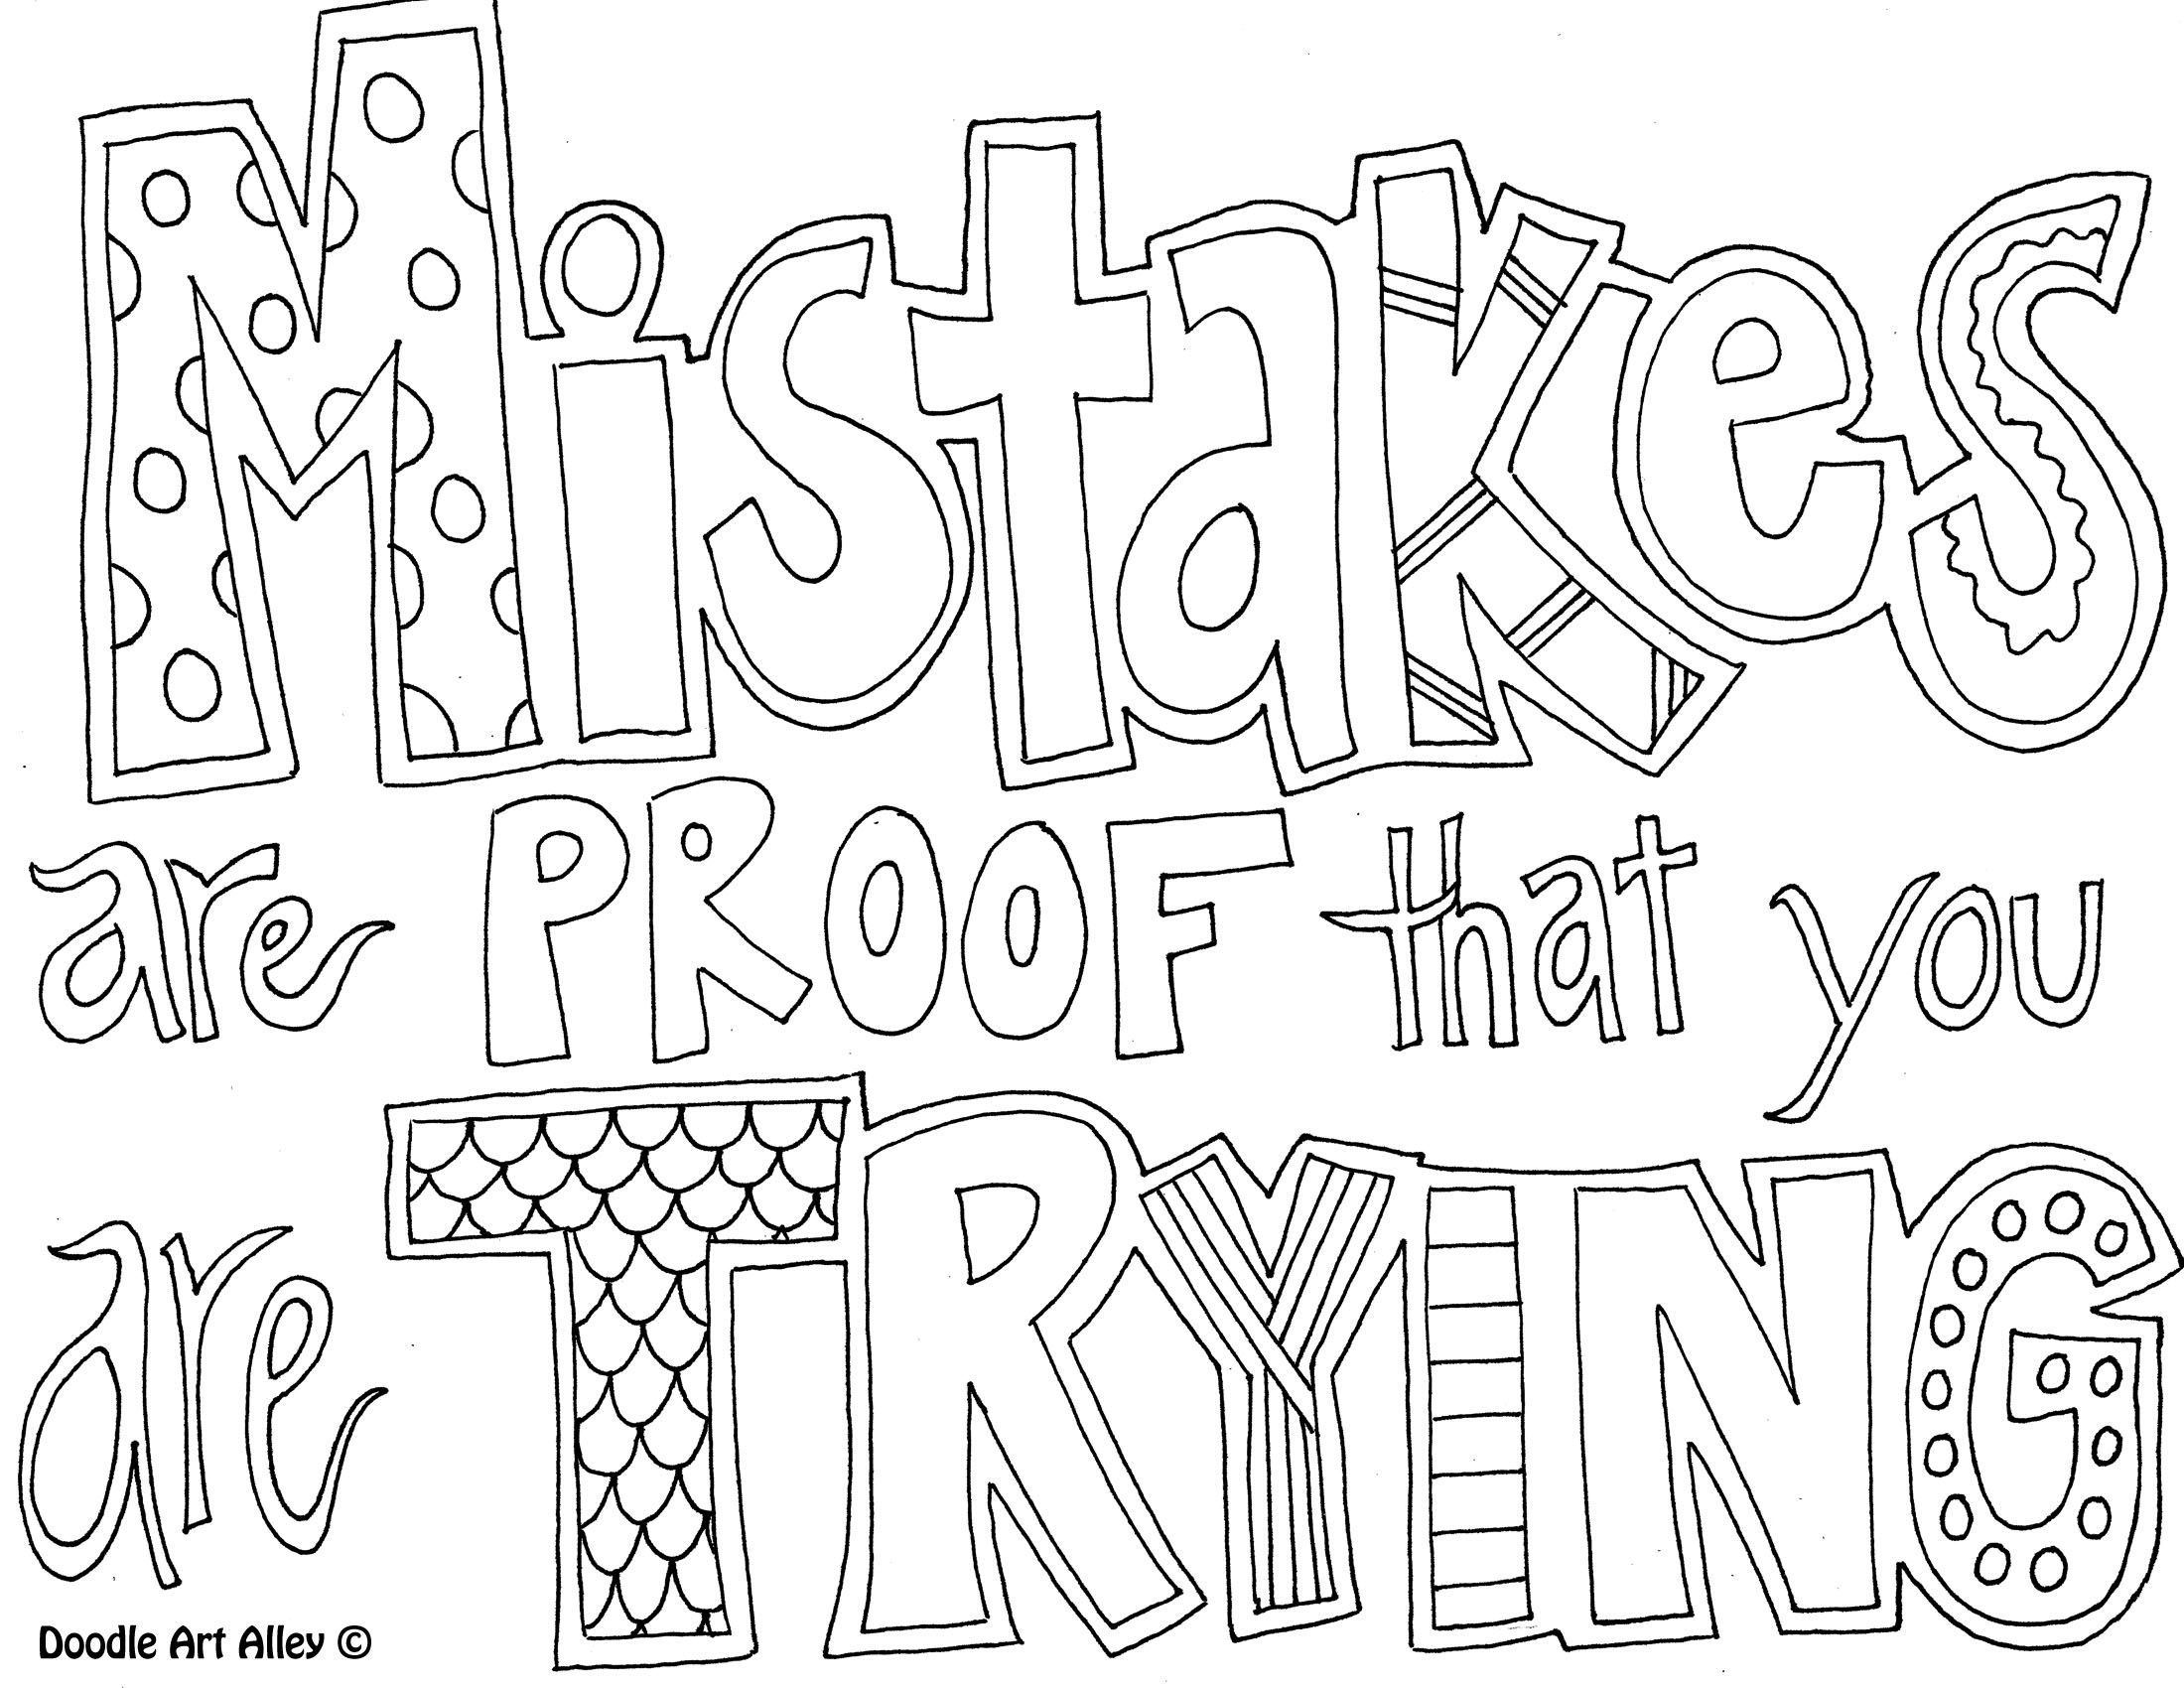 New Growth Mindset Coloring Pages Free Image Result For Coloring Pages For Art Class Quote Coloring Pages All Quotes Colouring Pages